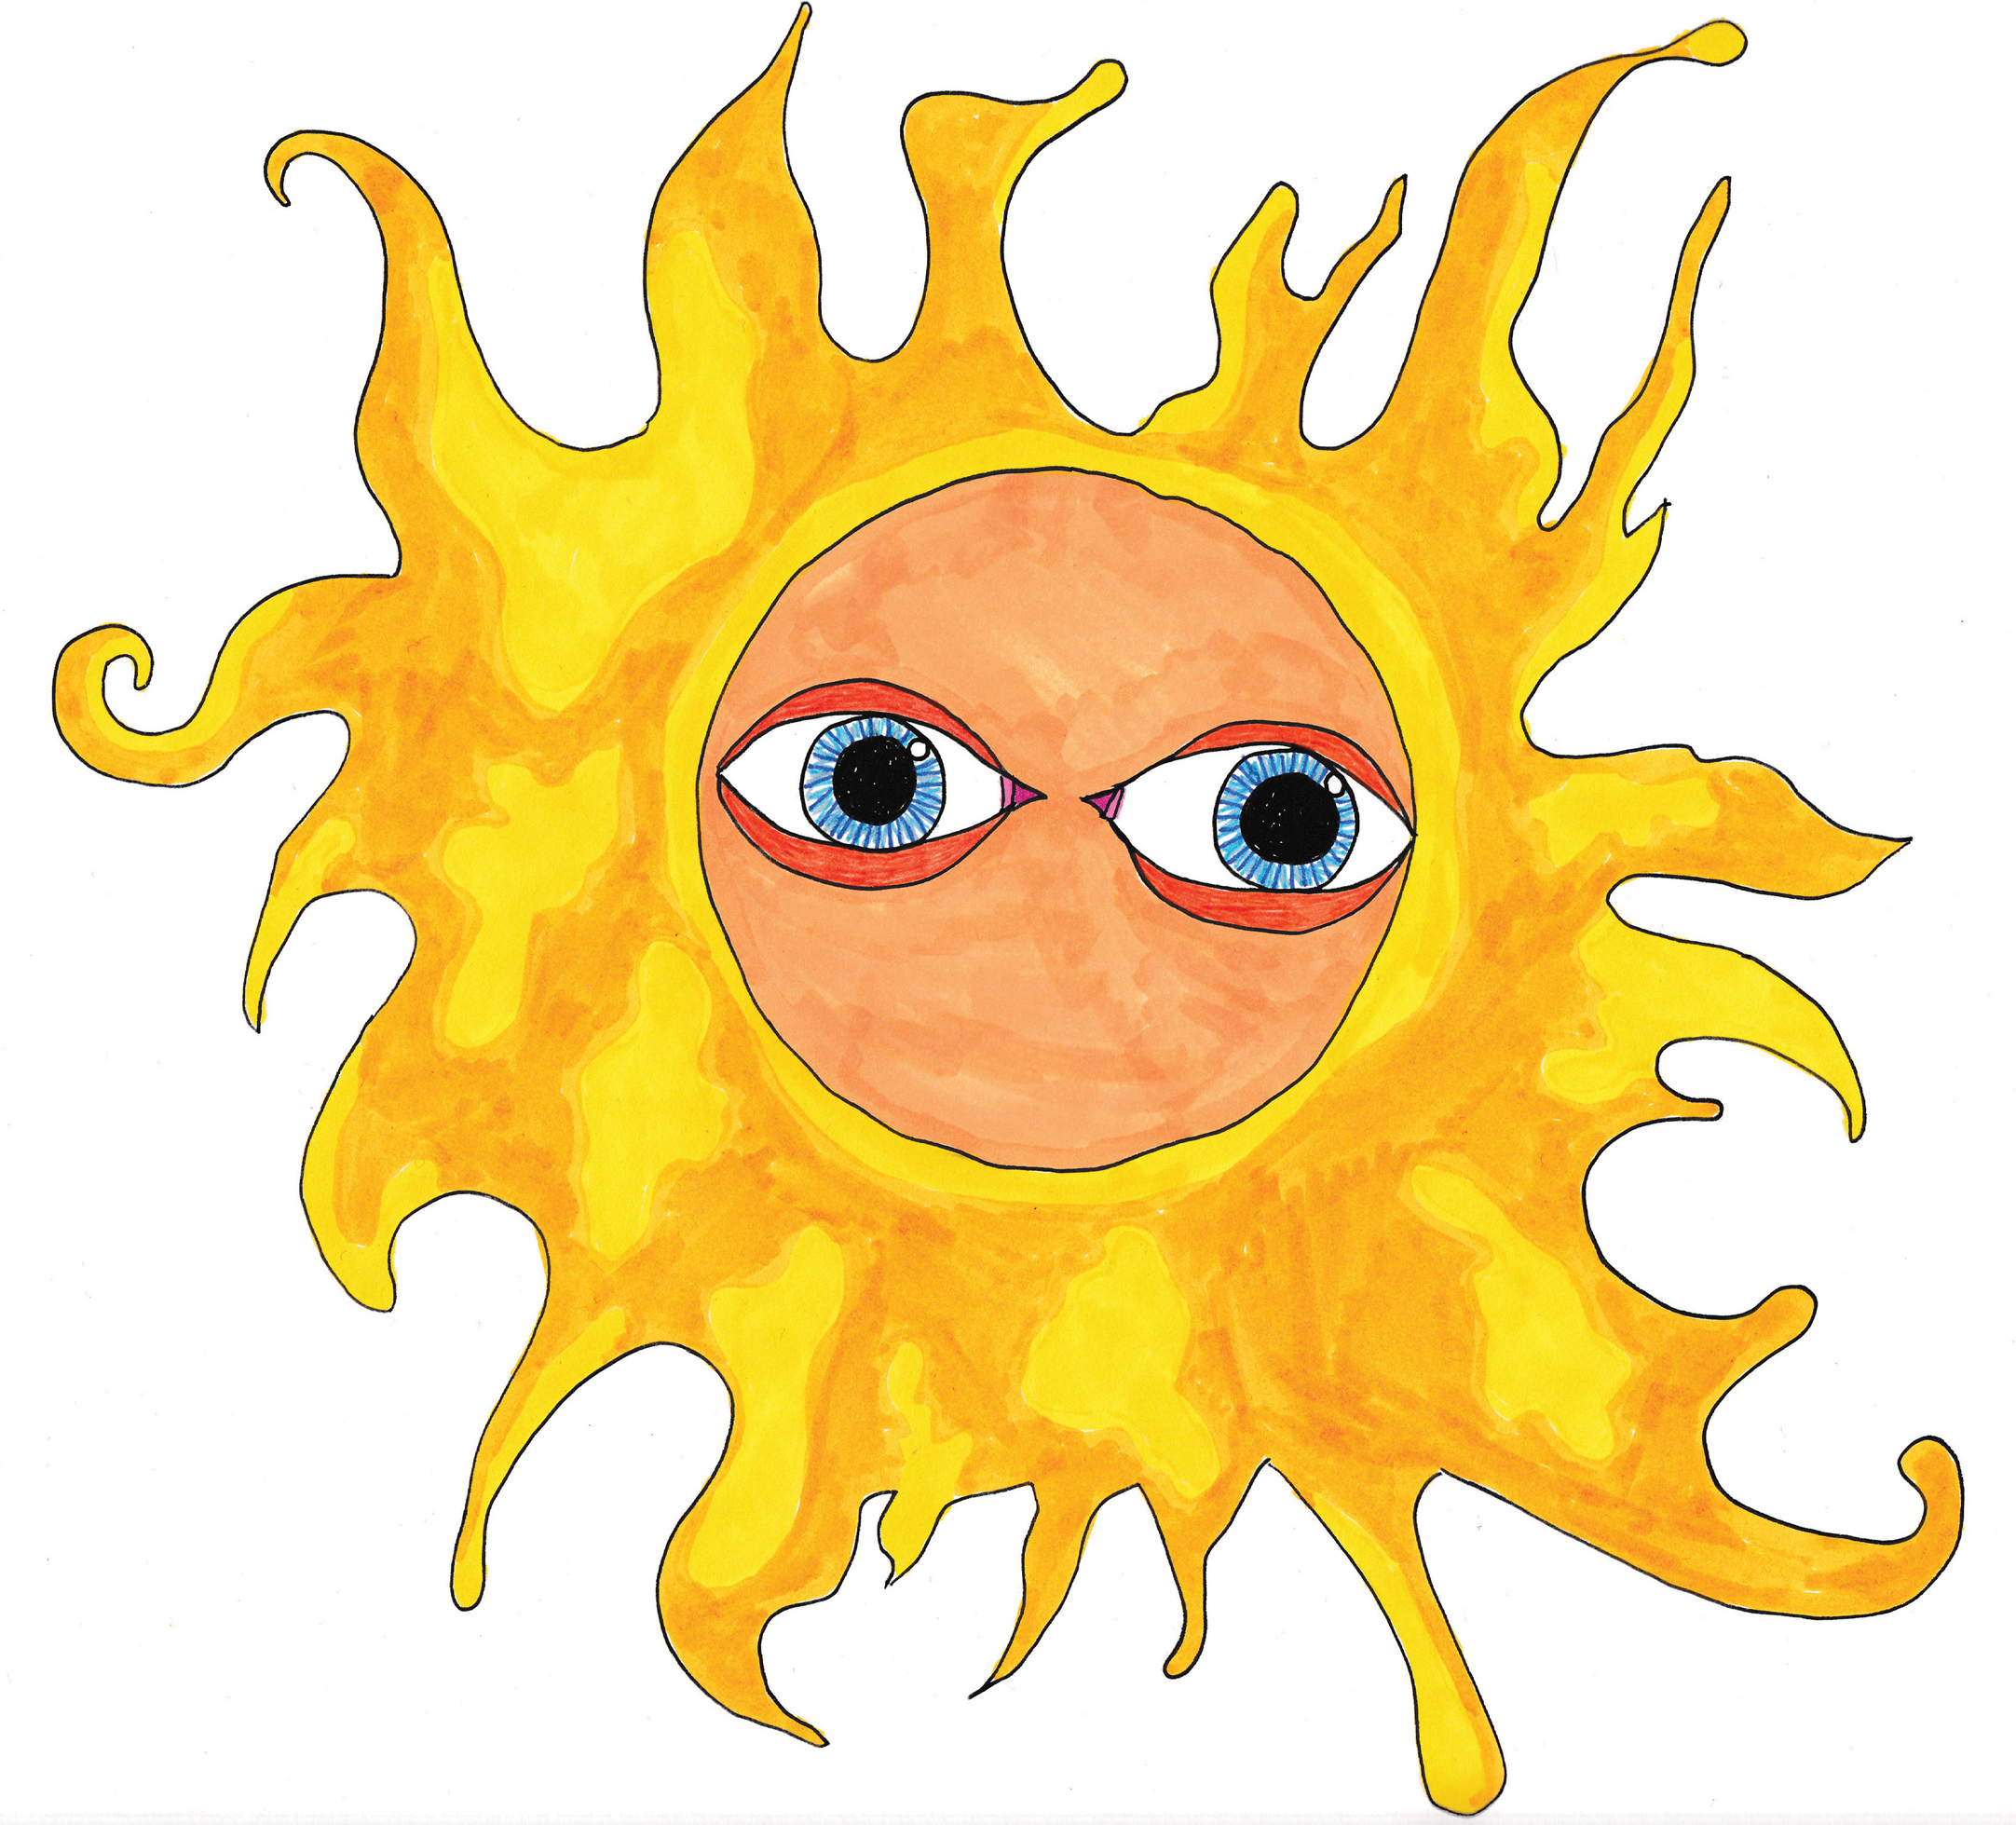 """""""Sad Sun"""" print  8x8 Limited edition giclee print on 8x8 hot press water color paper  $35 (U.S. shipping included)"""